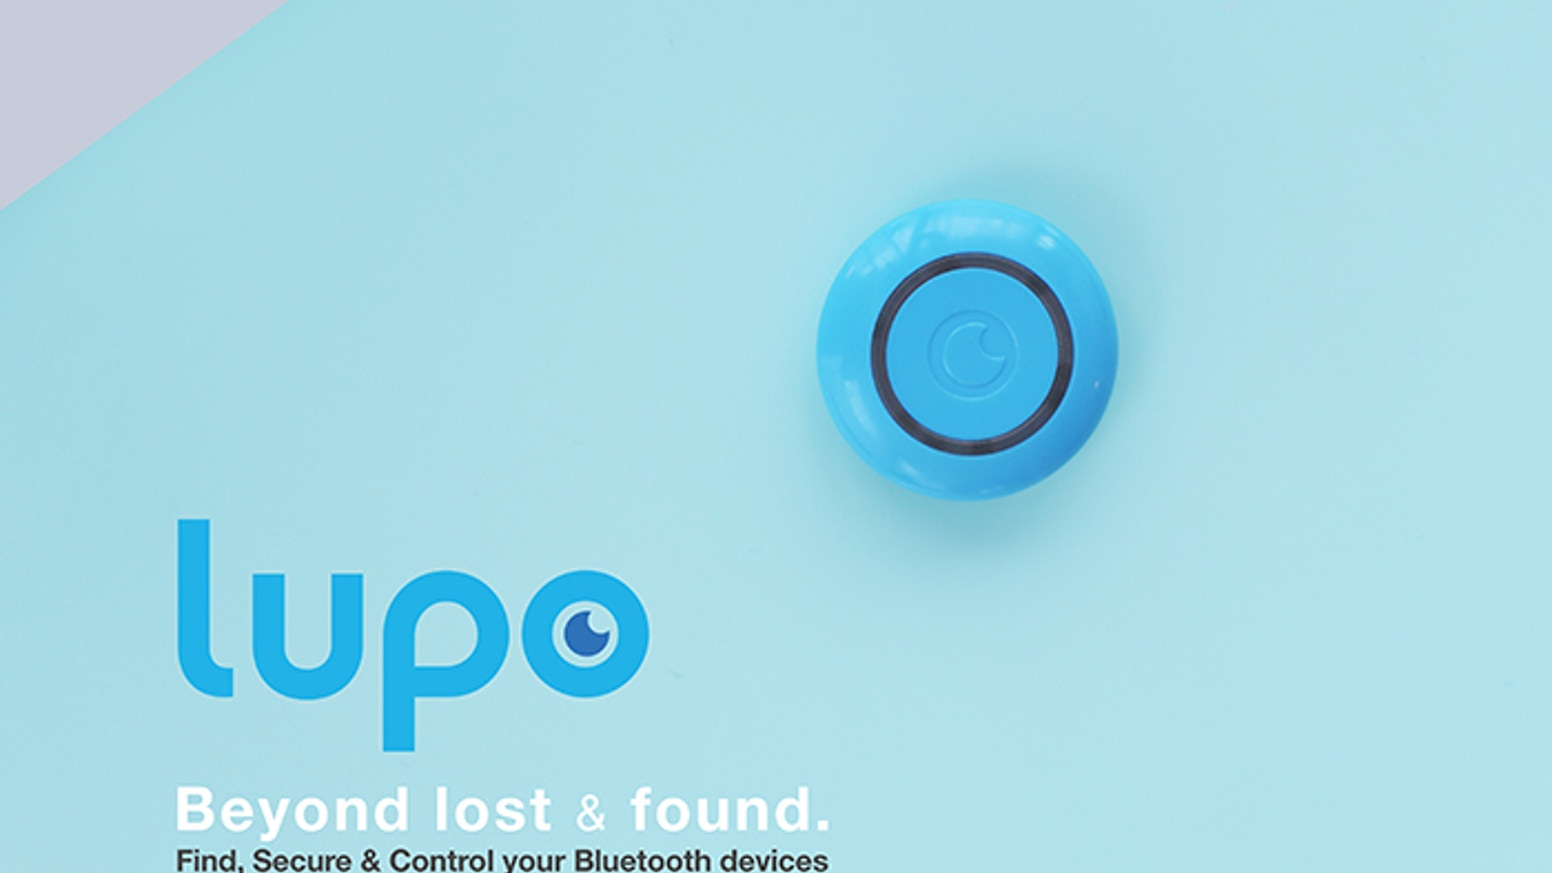 Lupo helps you to keep track of things: not lose valuables & remotely control presentations & more. Comes with unique SDK for new Apps.